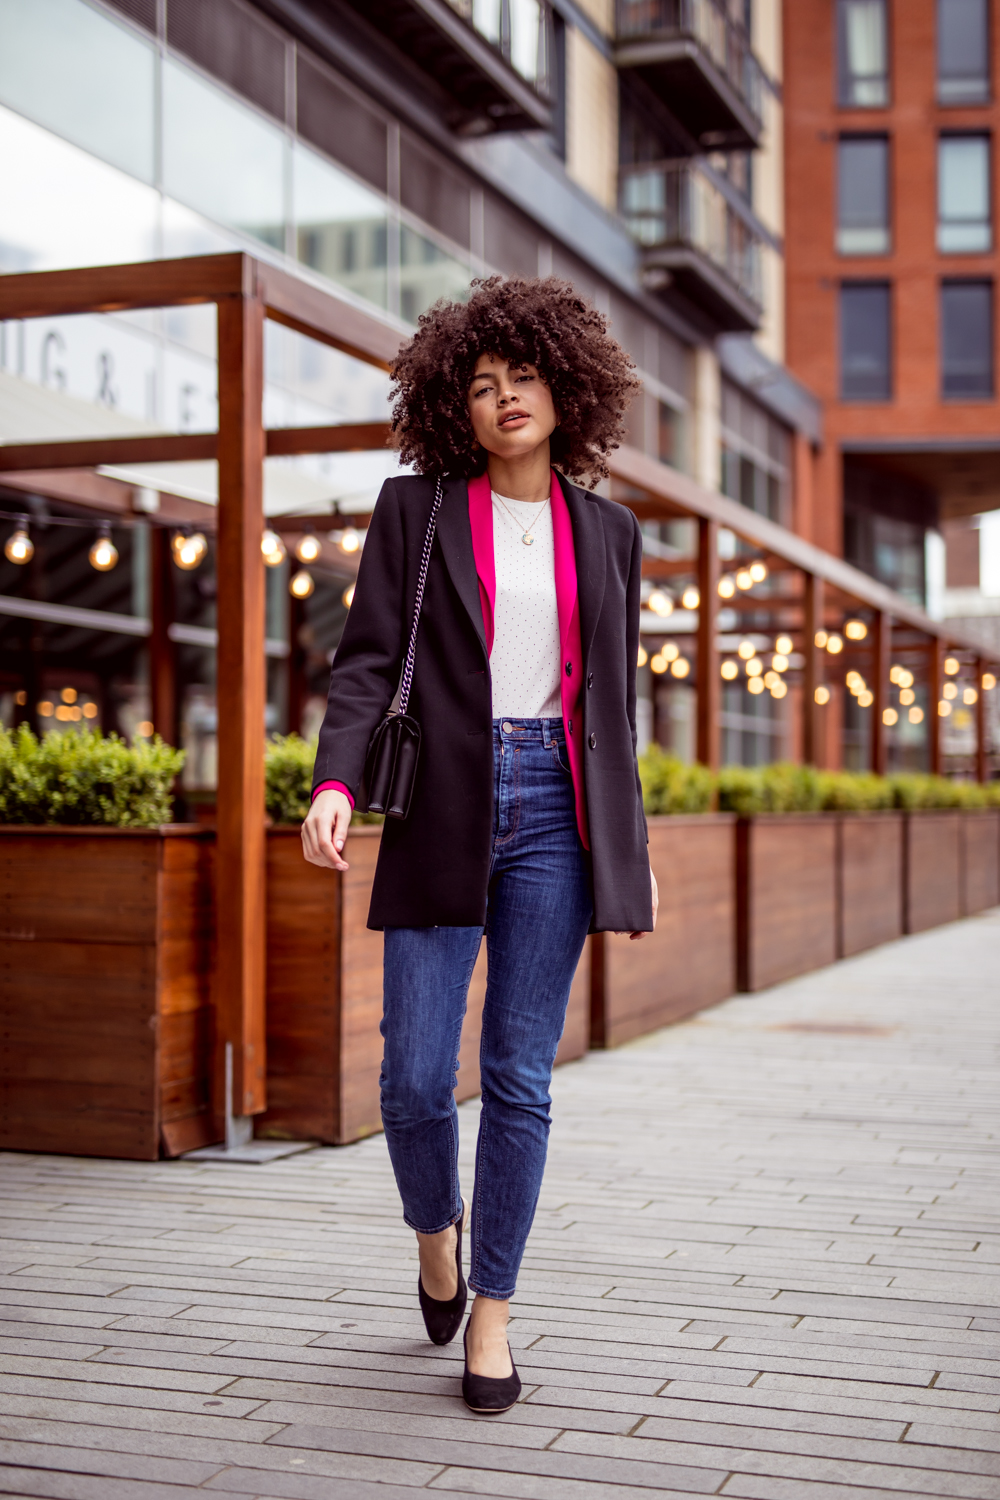 Asos Farleigh Jeans Jigsaw Jacket and French Connection Blazer Outfit